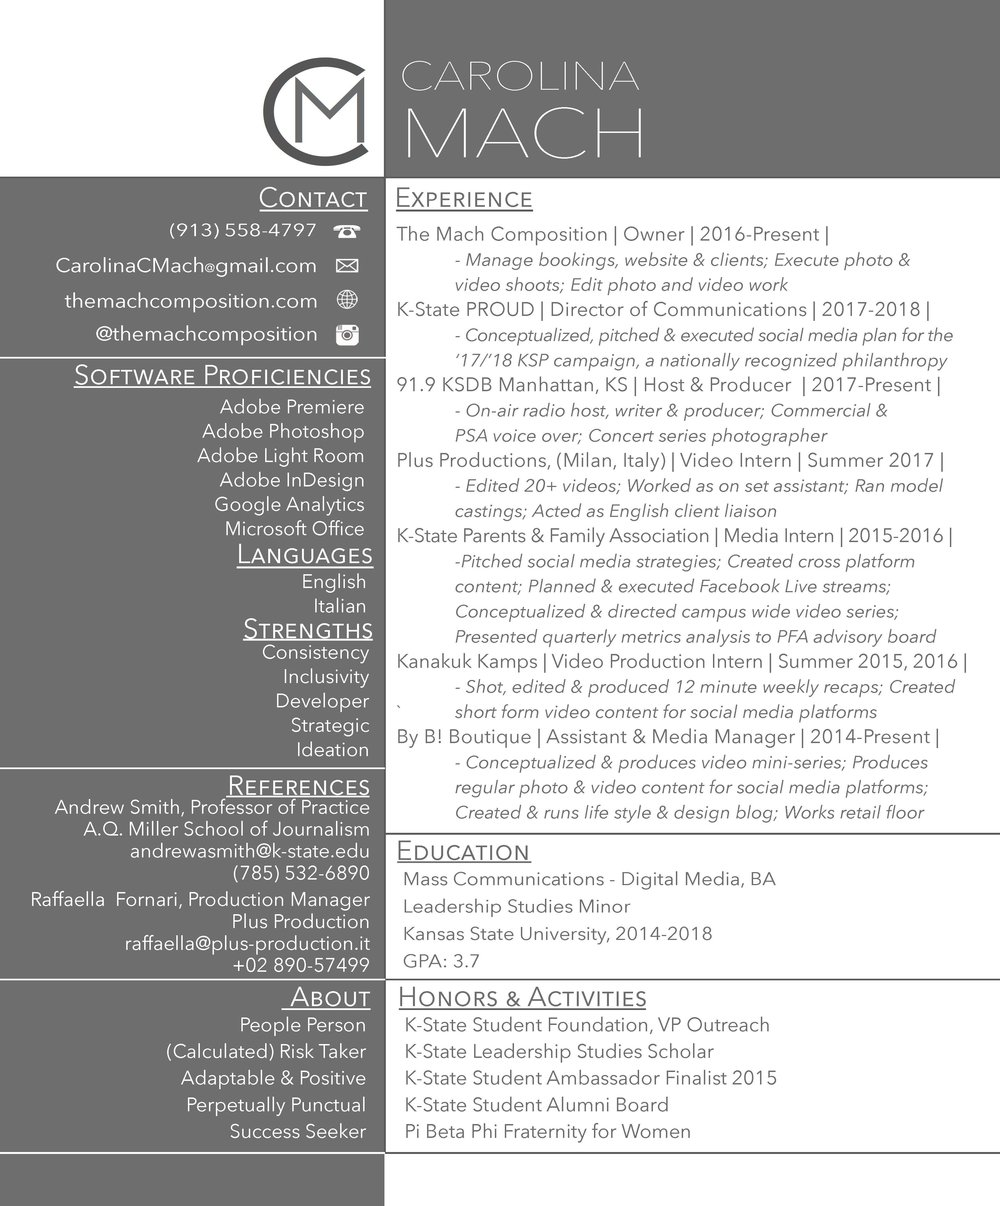 Resume The Mach Composition